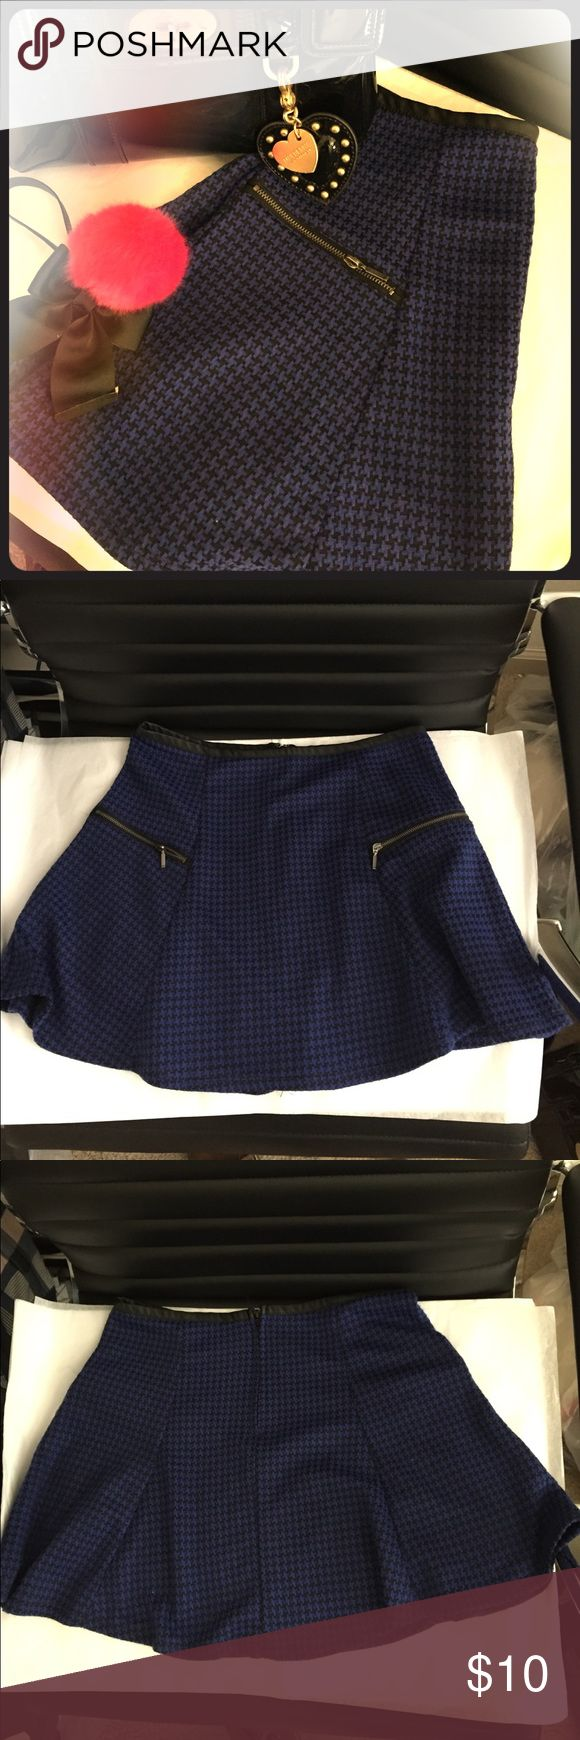 Size L Blue Houndstooth Skirt This is a chic, blue and black houndstooth skirt from Macy's. The brand is Stoosh. It has fake zipper pockets (🙄) but it is still very cute. It also has a zipper on the back. At the top of the waist part, it is trimmed with faux leather. Fabric is perfect for all seasons. Outfit examples could be with a white top and flats for summer, or riding boots and a cowl neck sweater in fall. 😊 Skirt is just above the knees. No rips or stains! Stoosh Skirts